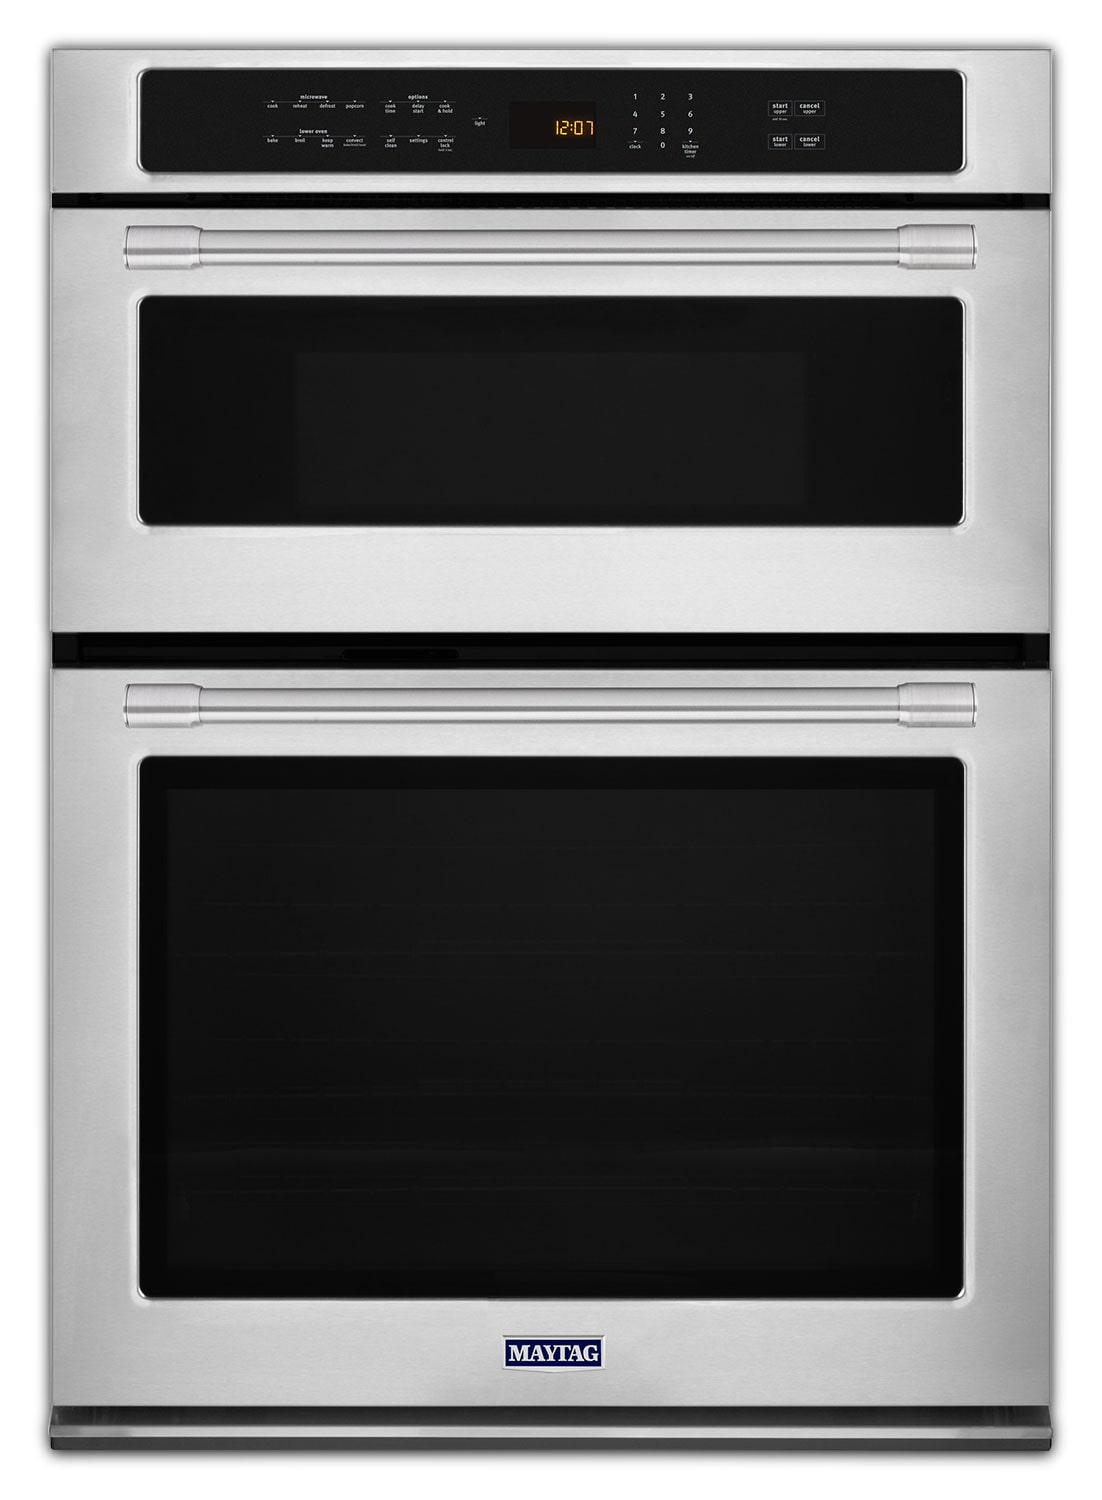 Cooking Products - Maytag Stainless Steel Electric Double Wall Oven with Microwave (5.0 Cu. Ft.) - MMW9730FZ